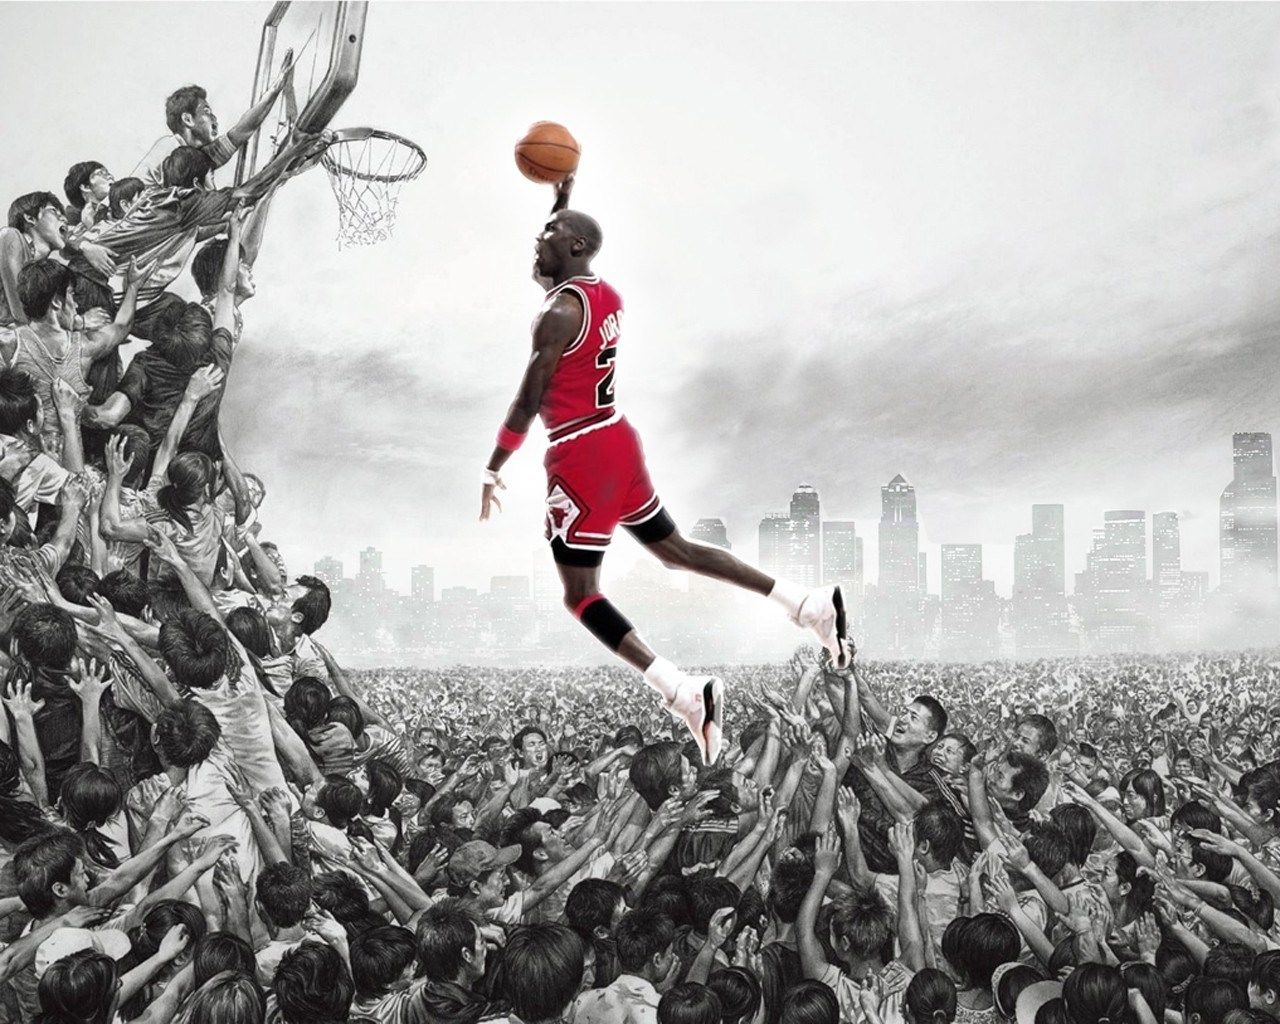 1280x1024 Pretty Chicago Bulls Michael Jordan Chicago Bulls Michael Jordan Jordan Poster